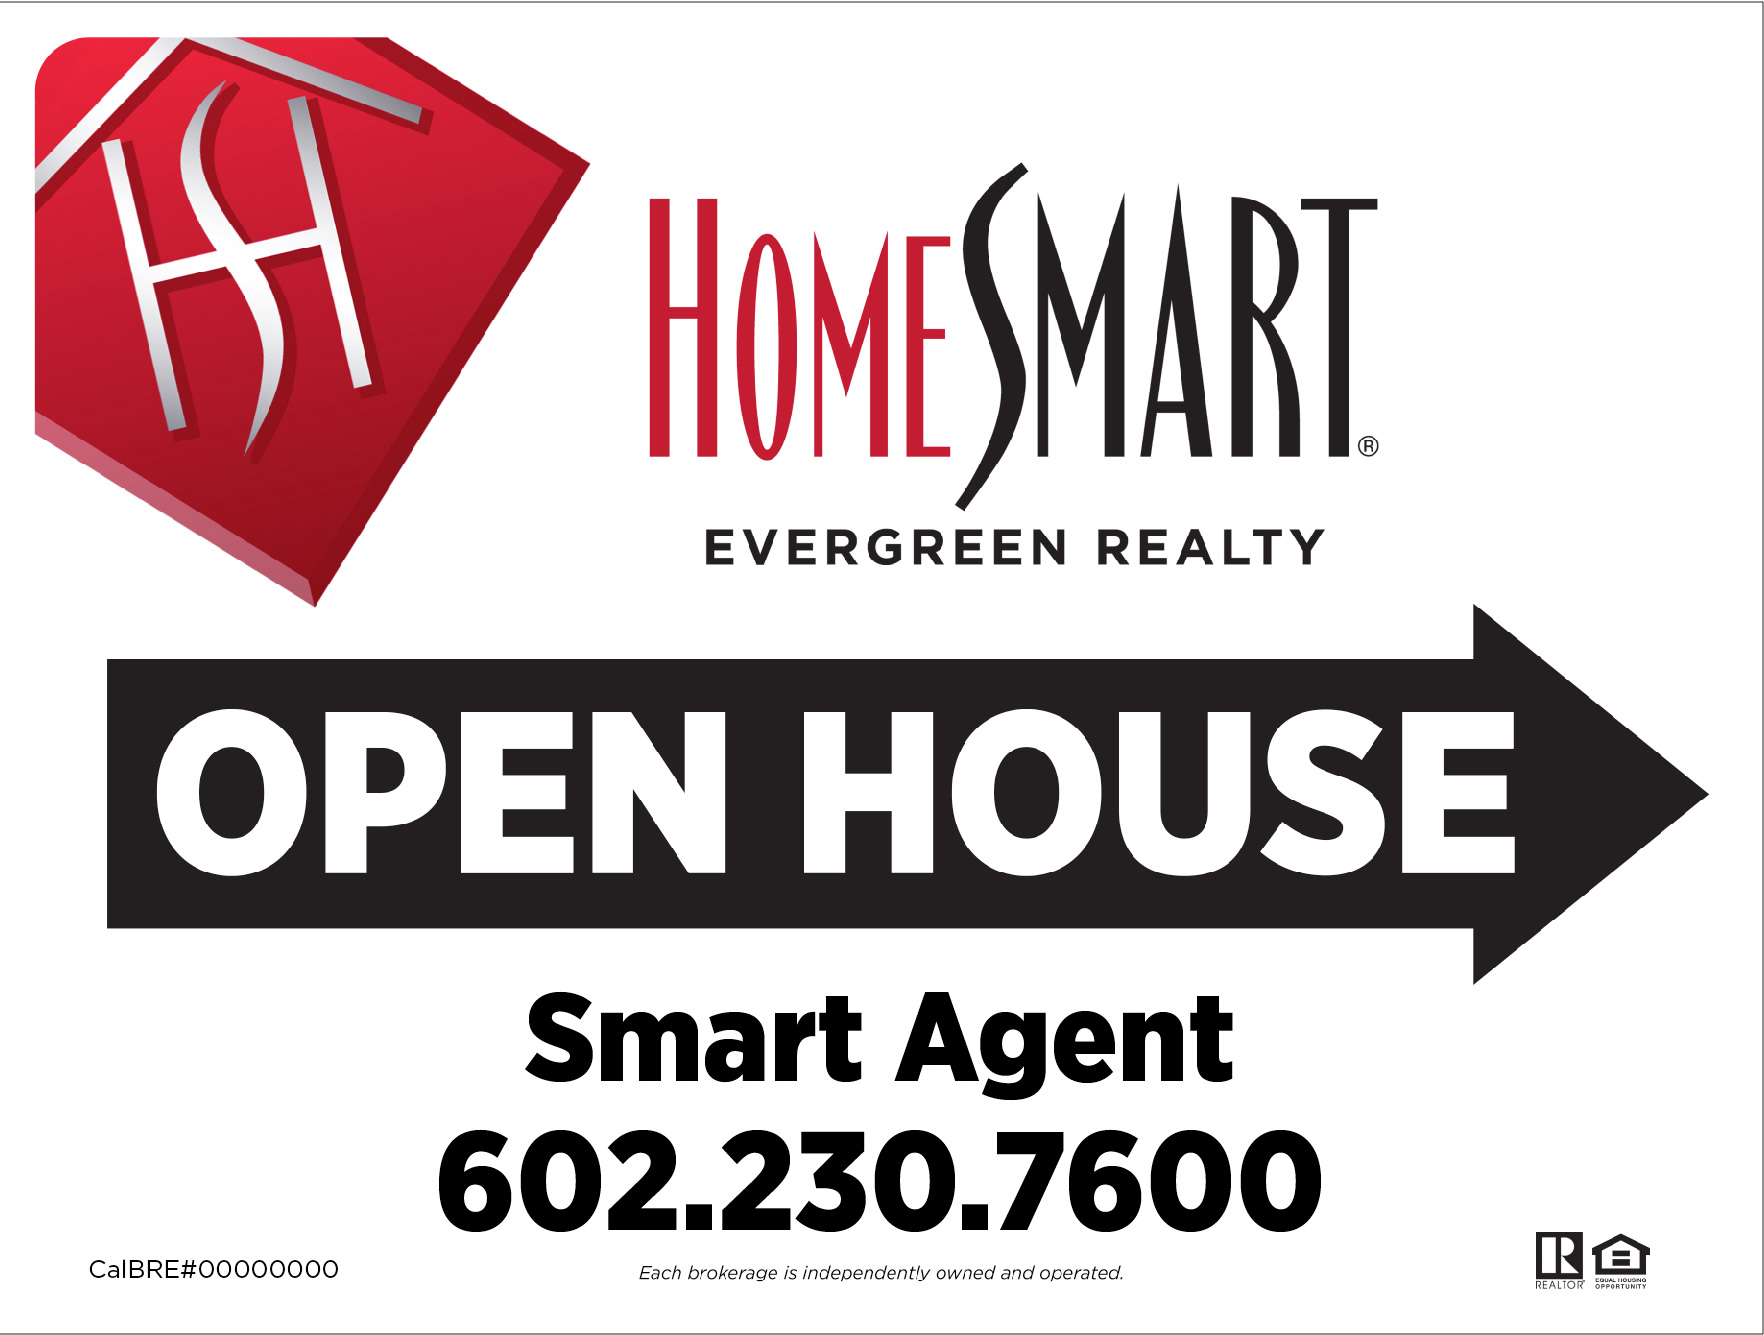 Evergreen open house signs